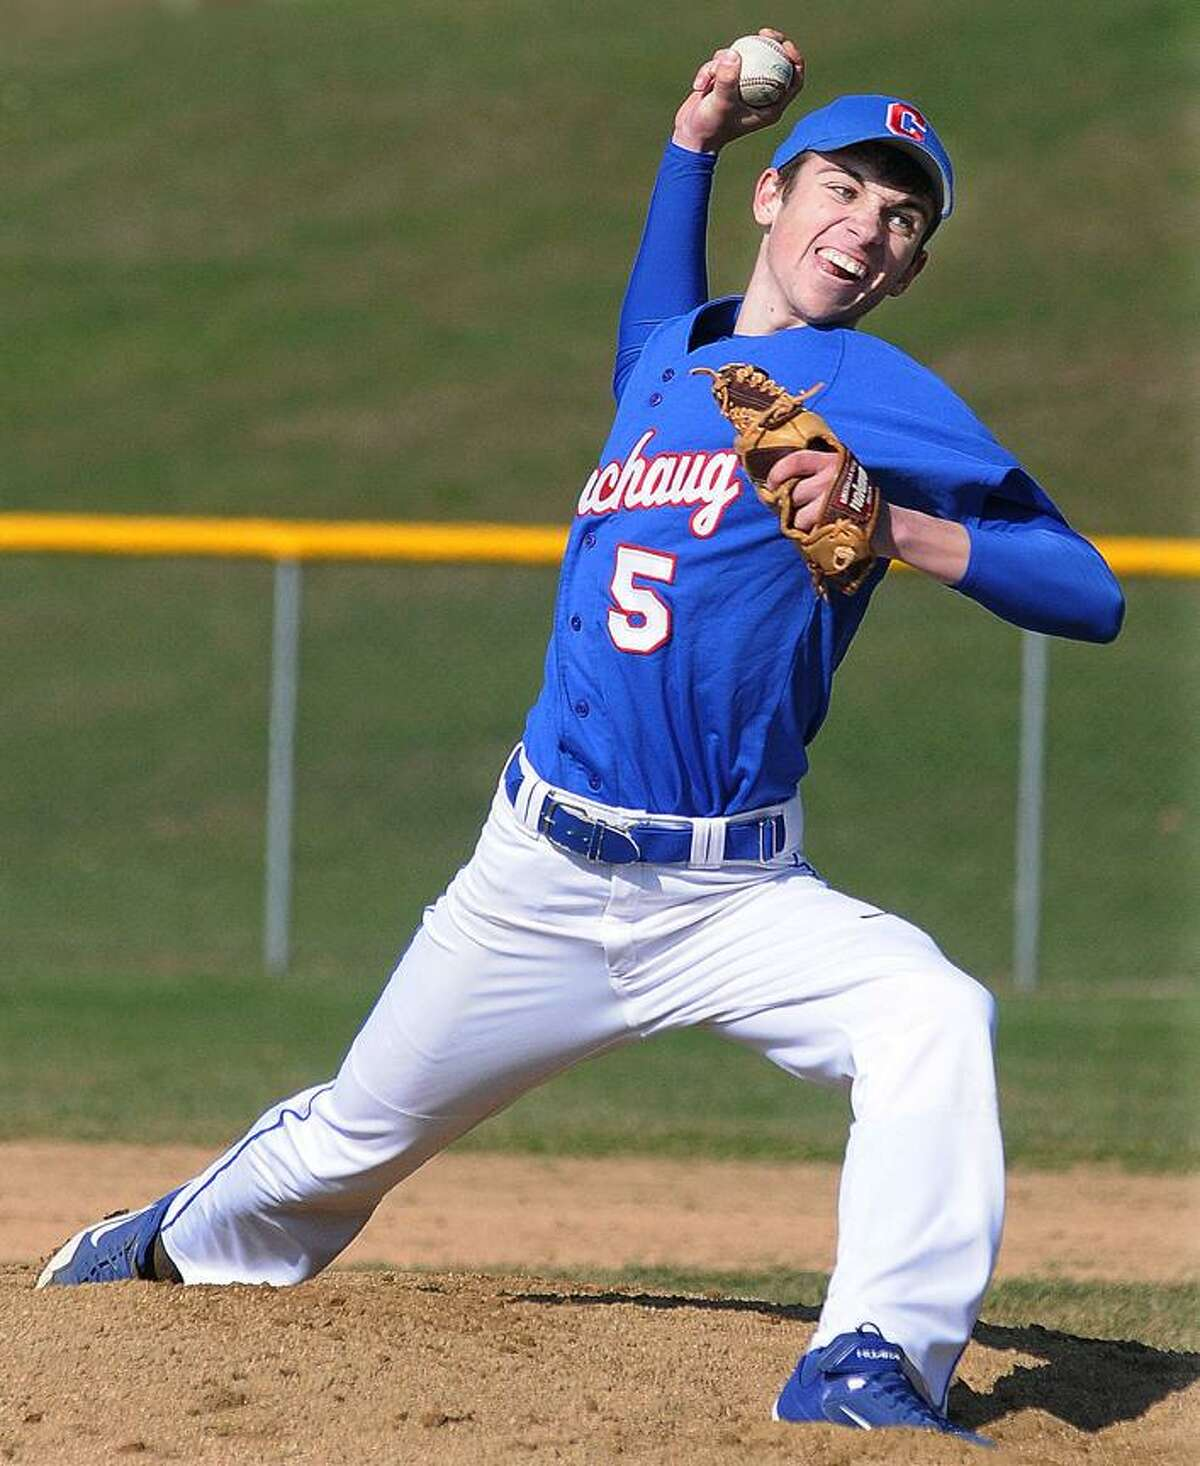 Catherine Avalone/The Middletown Press Coginchaug pitcher Mike McShane on the mound against Old Saybrook Monday afternoon at home. McShane threw 81 strikes out of 120 pitches. Coginchaug won 3-2 in a walk off in the 10th inning.